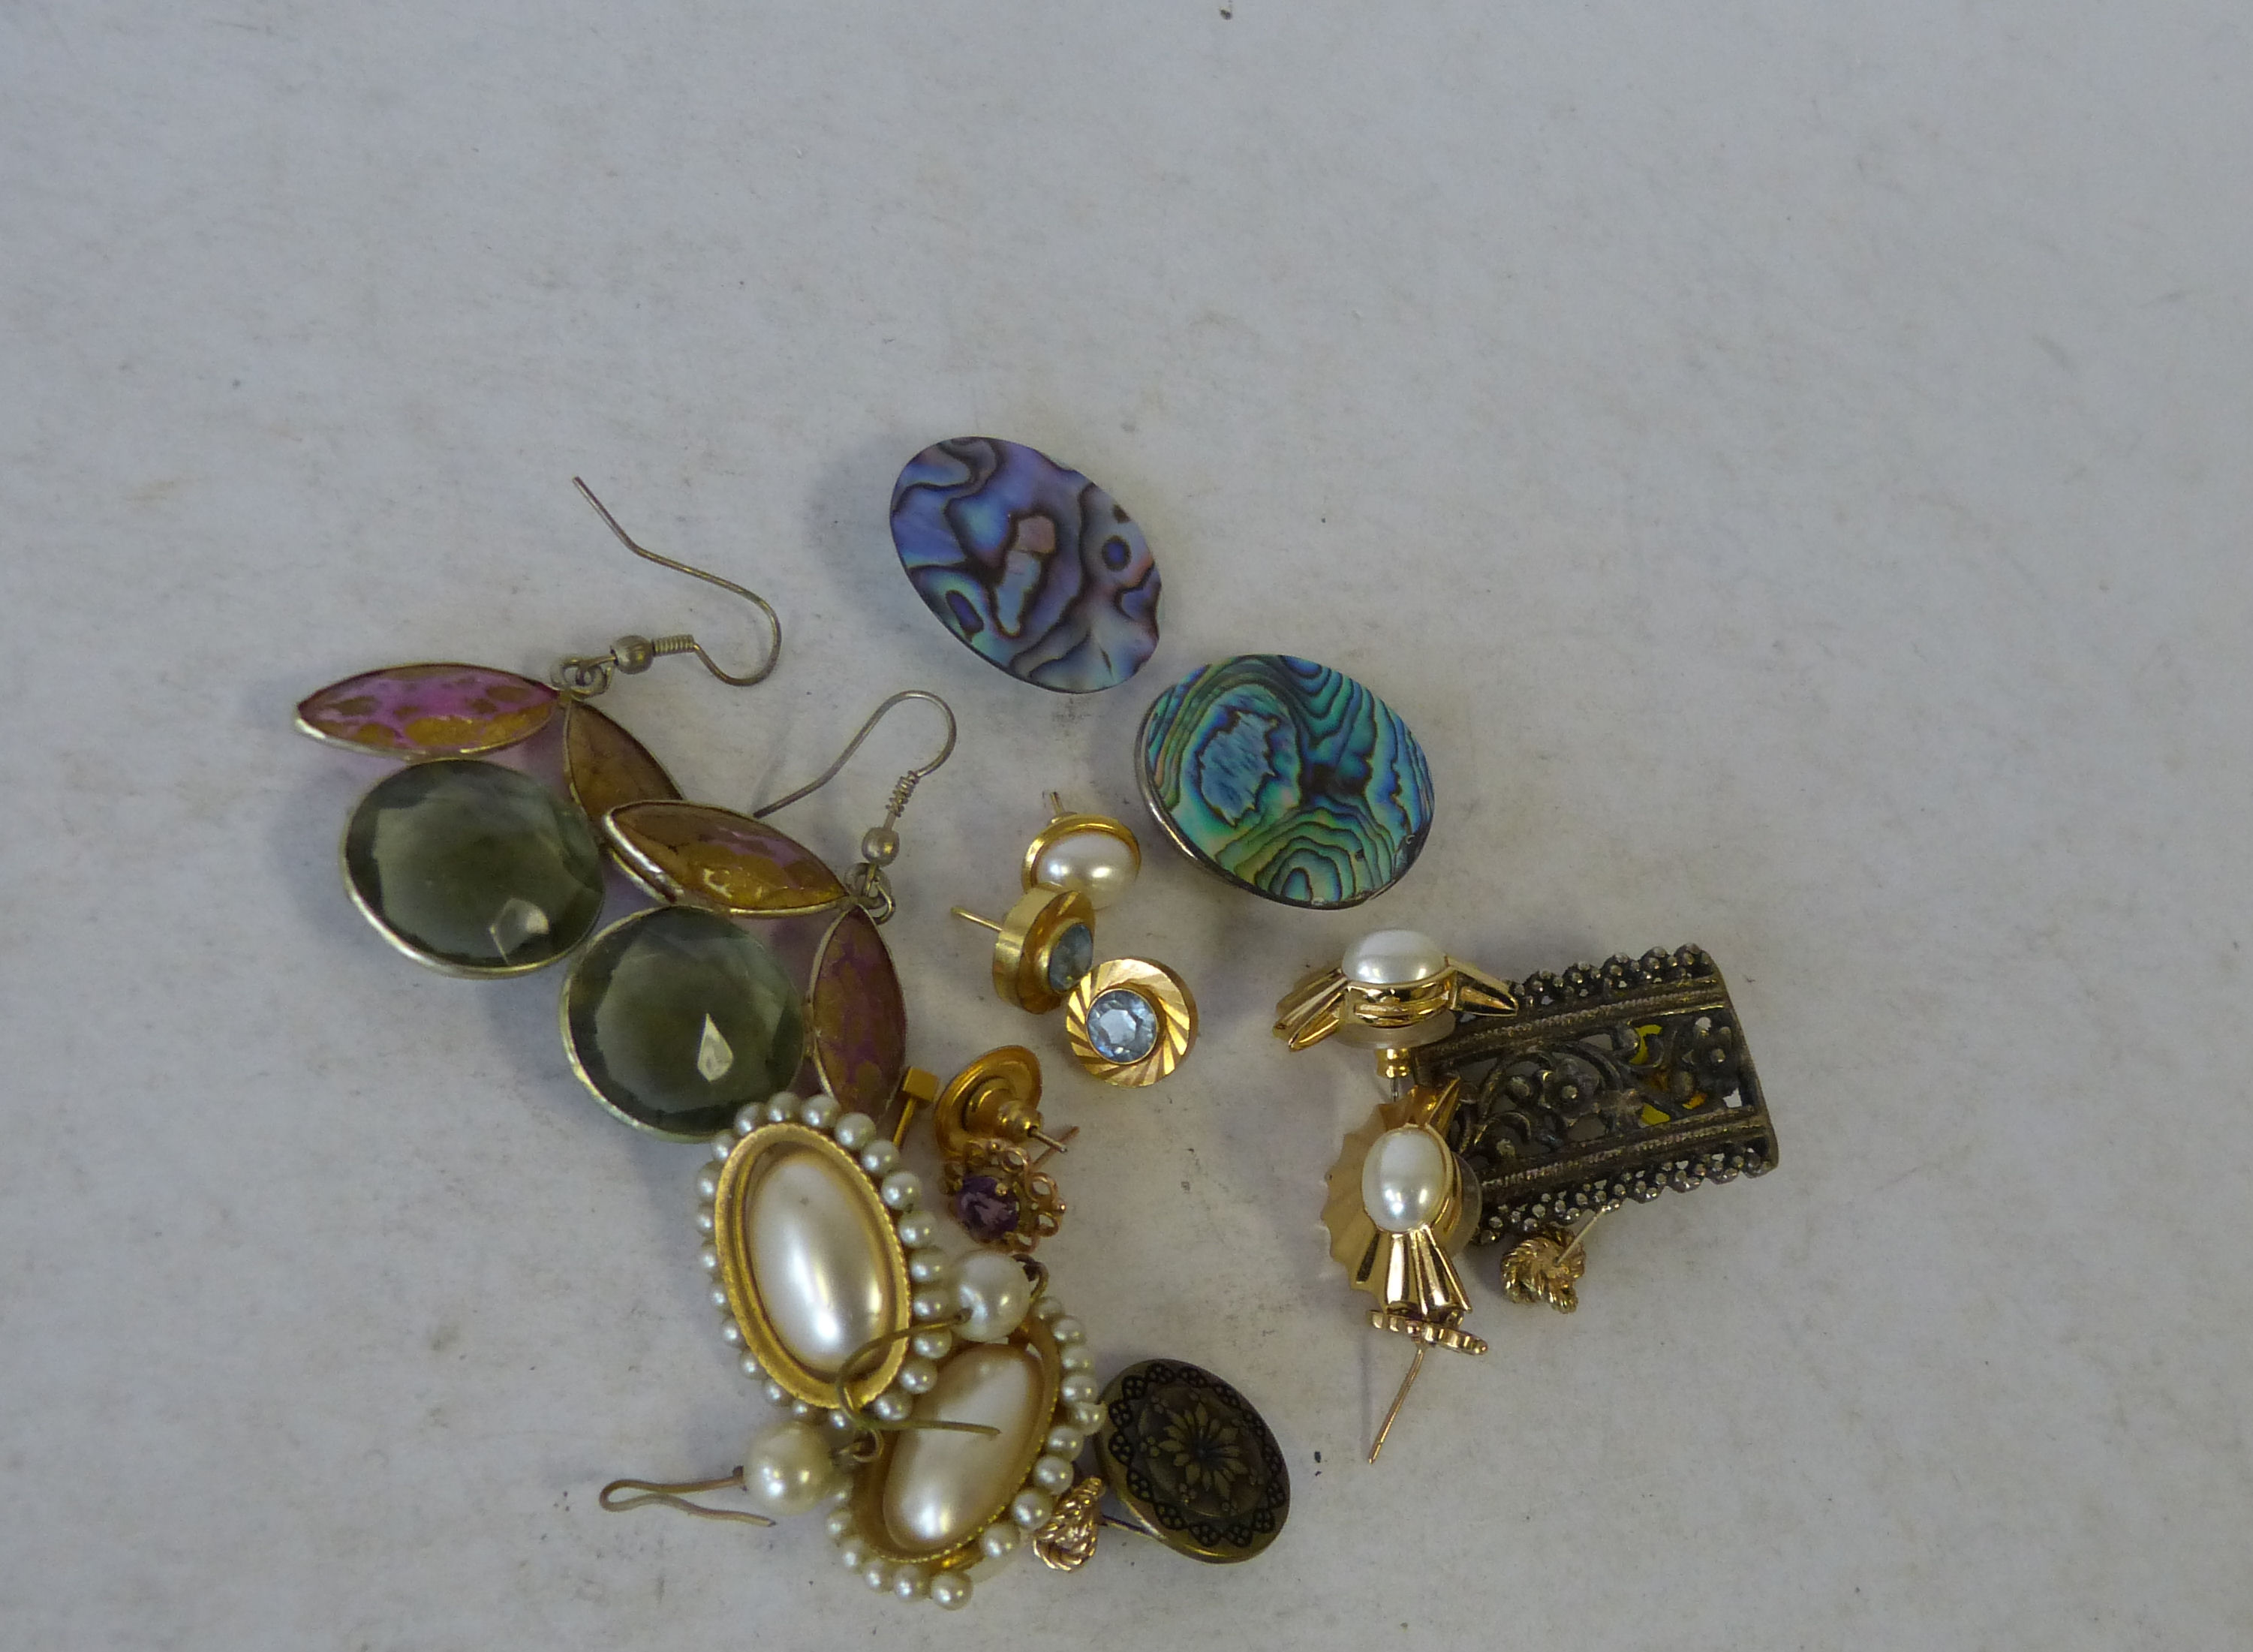 A Pair of Amethyst Gold Earrings and a quantity of various other earring